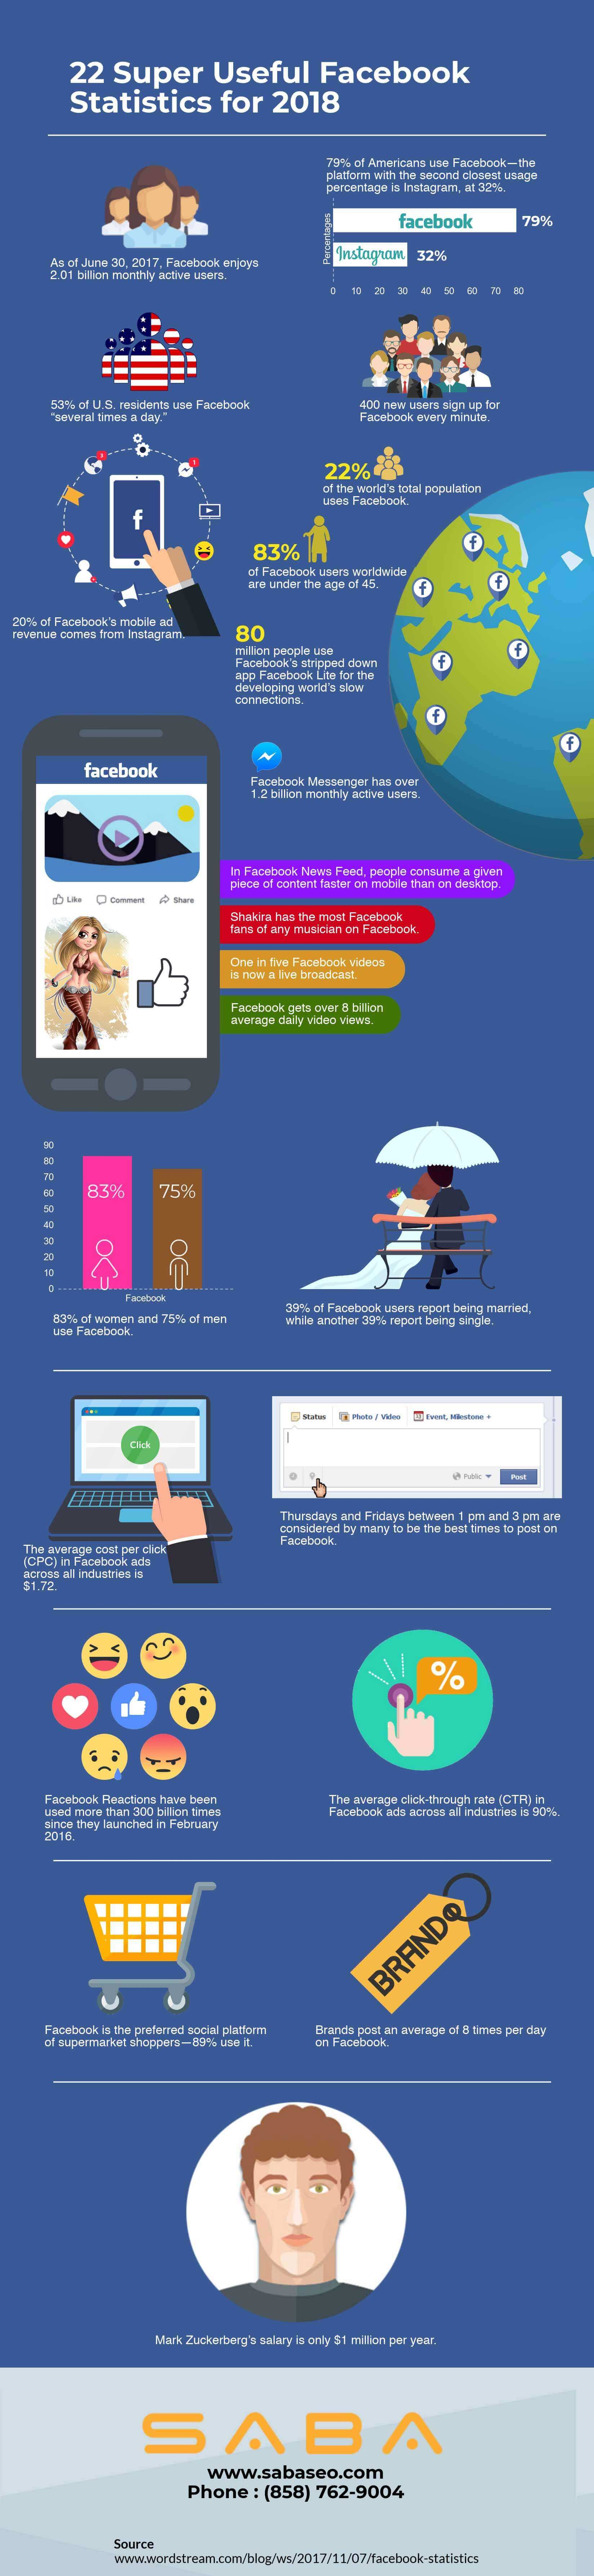 22 Super-Useful Facebook Statistics for 2018 [Infographic]